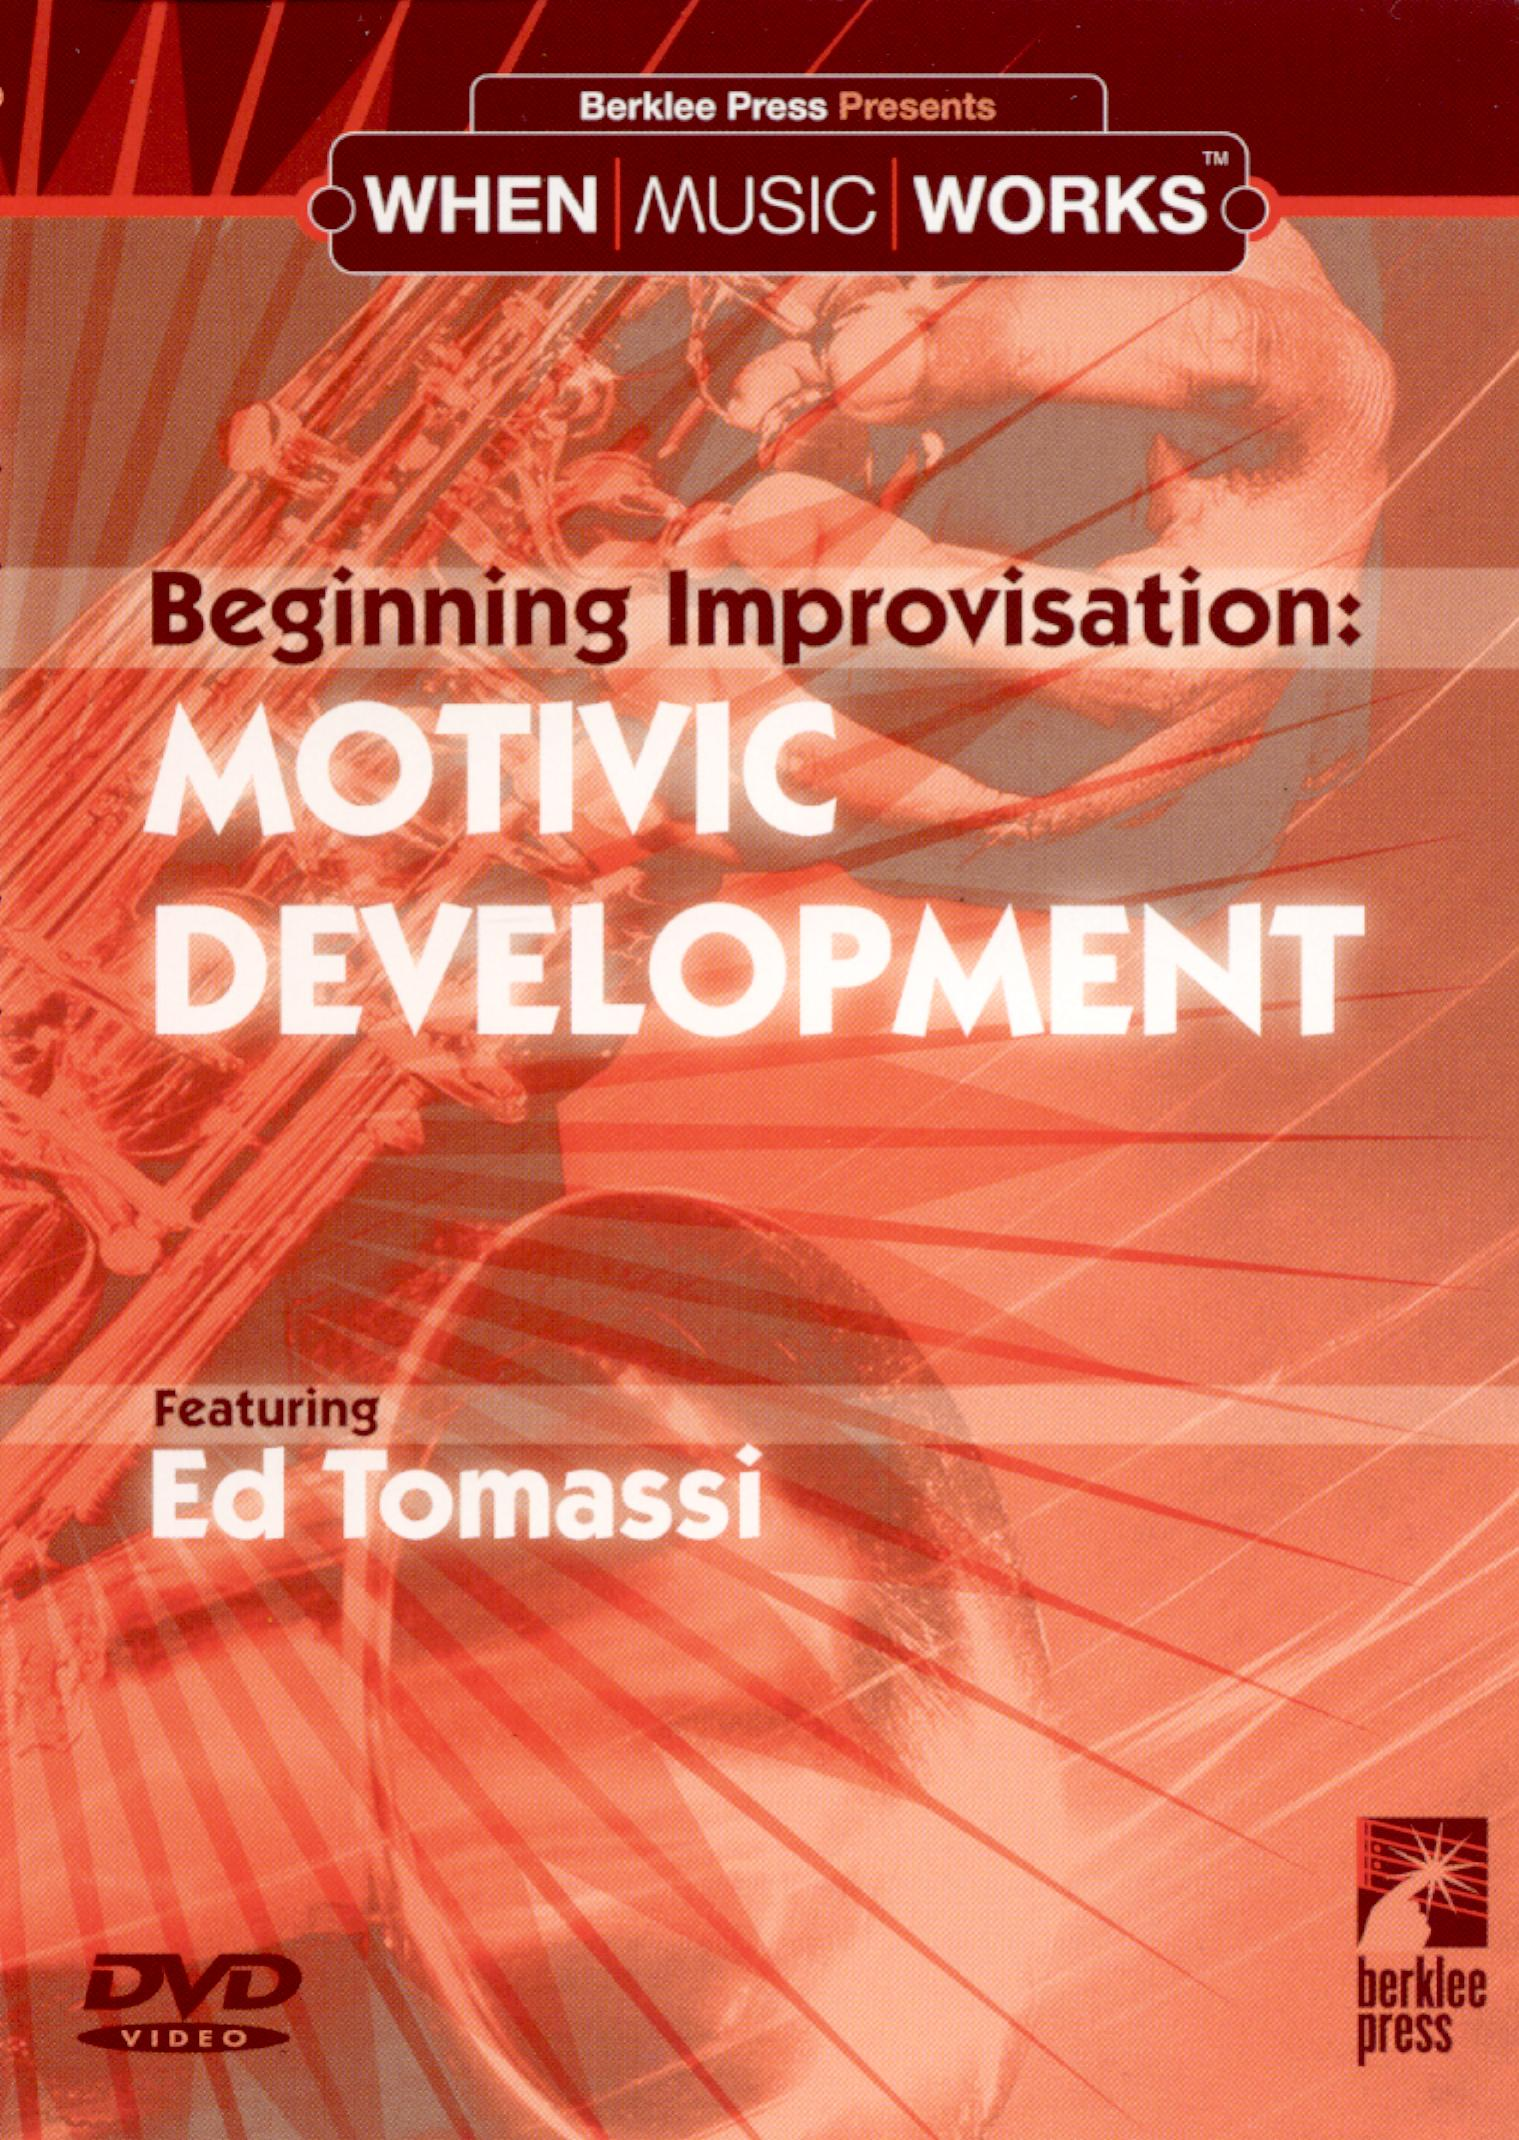 Beginning Improvisation: Motivic Development